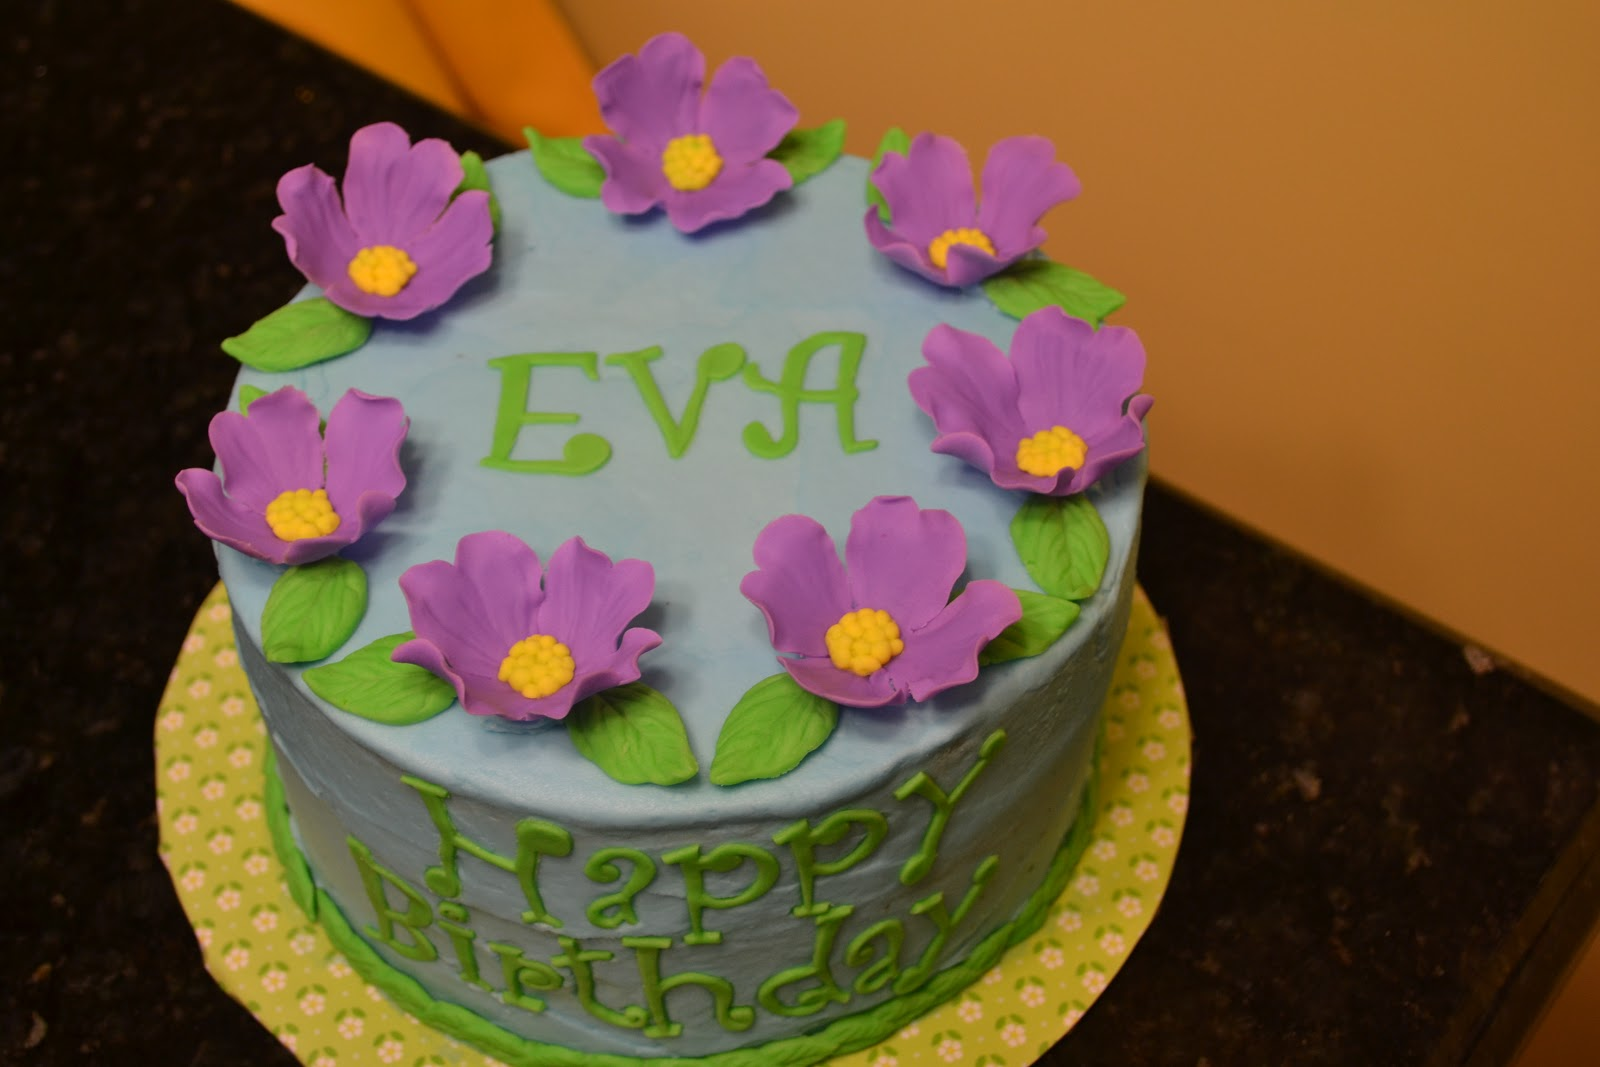 Cakes by Lala Evas 7th birthday purple flower cake